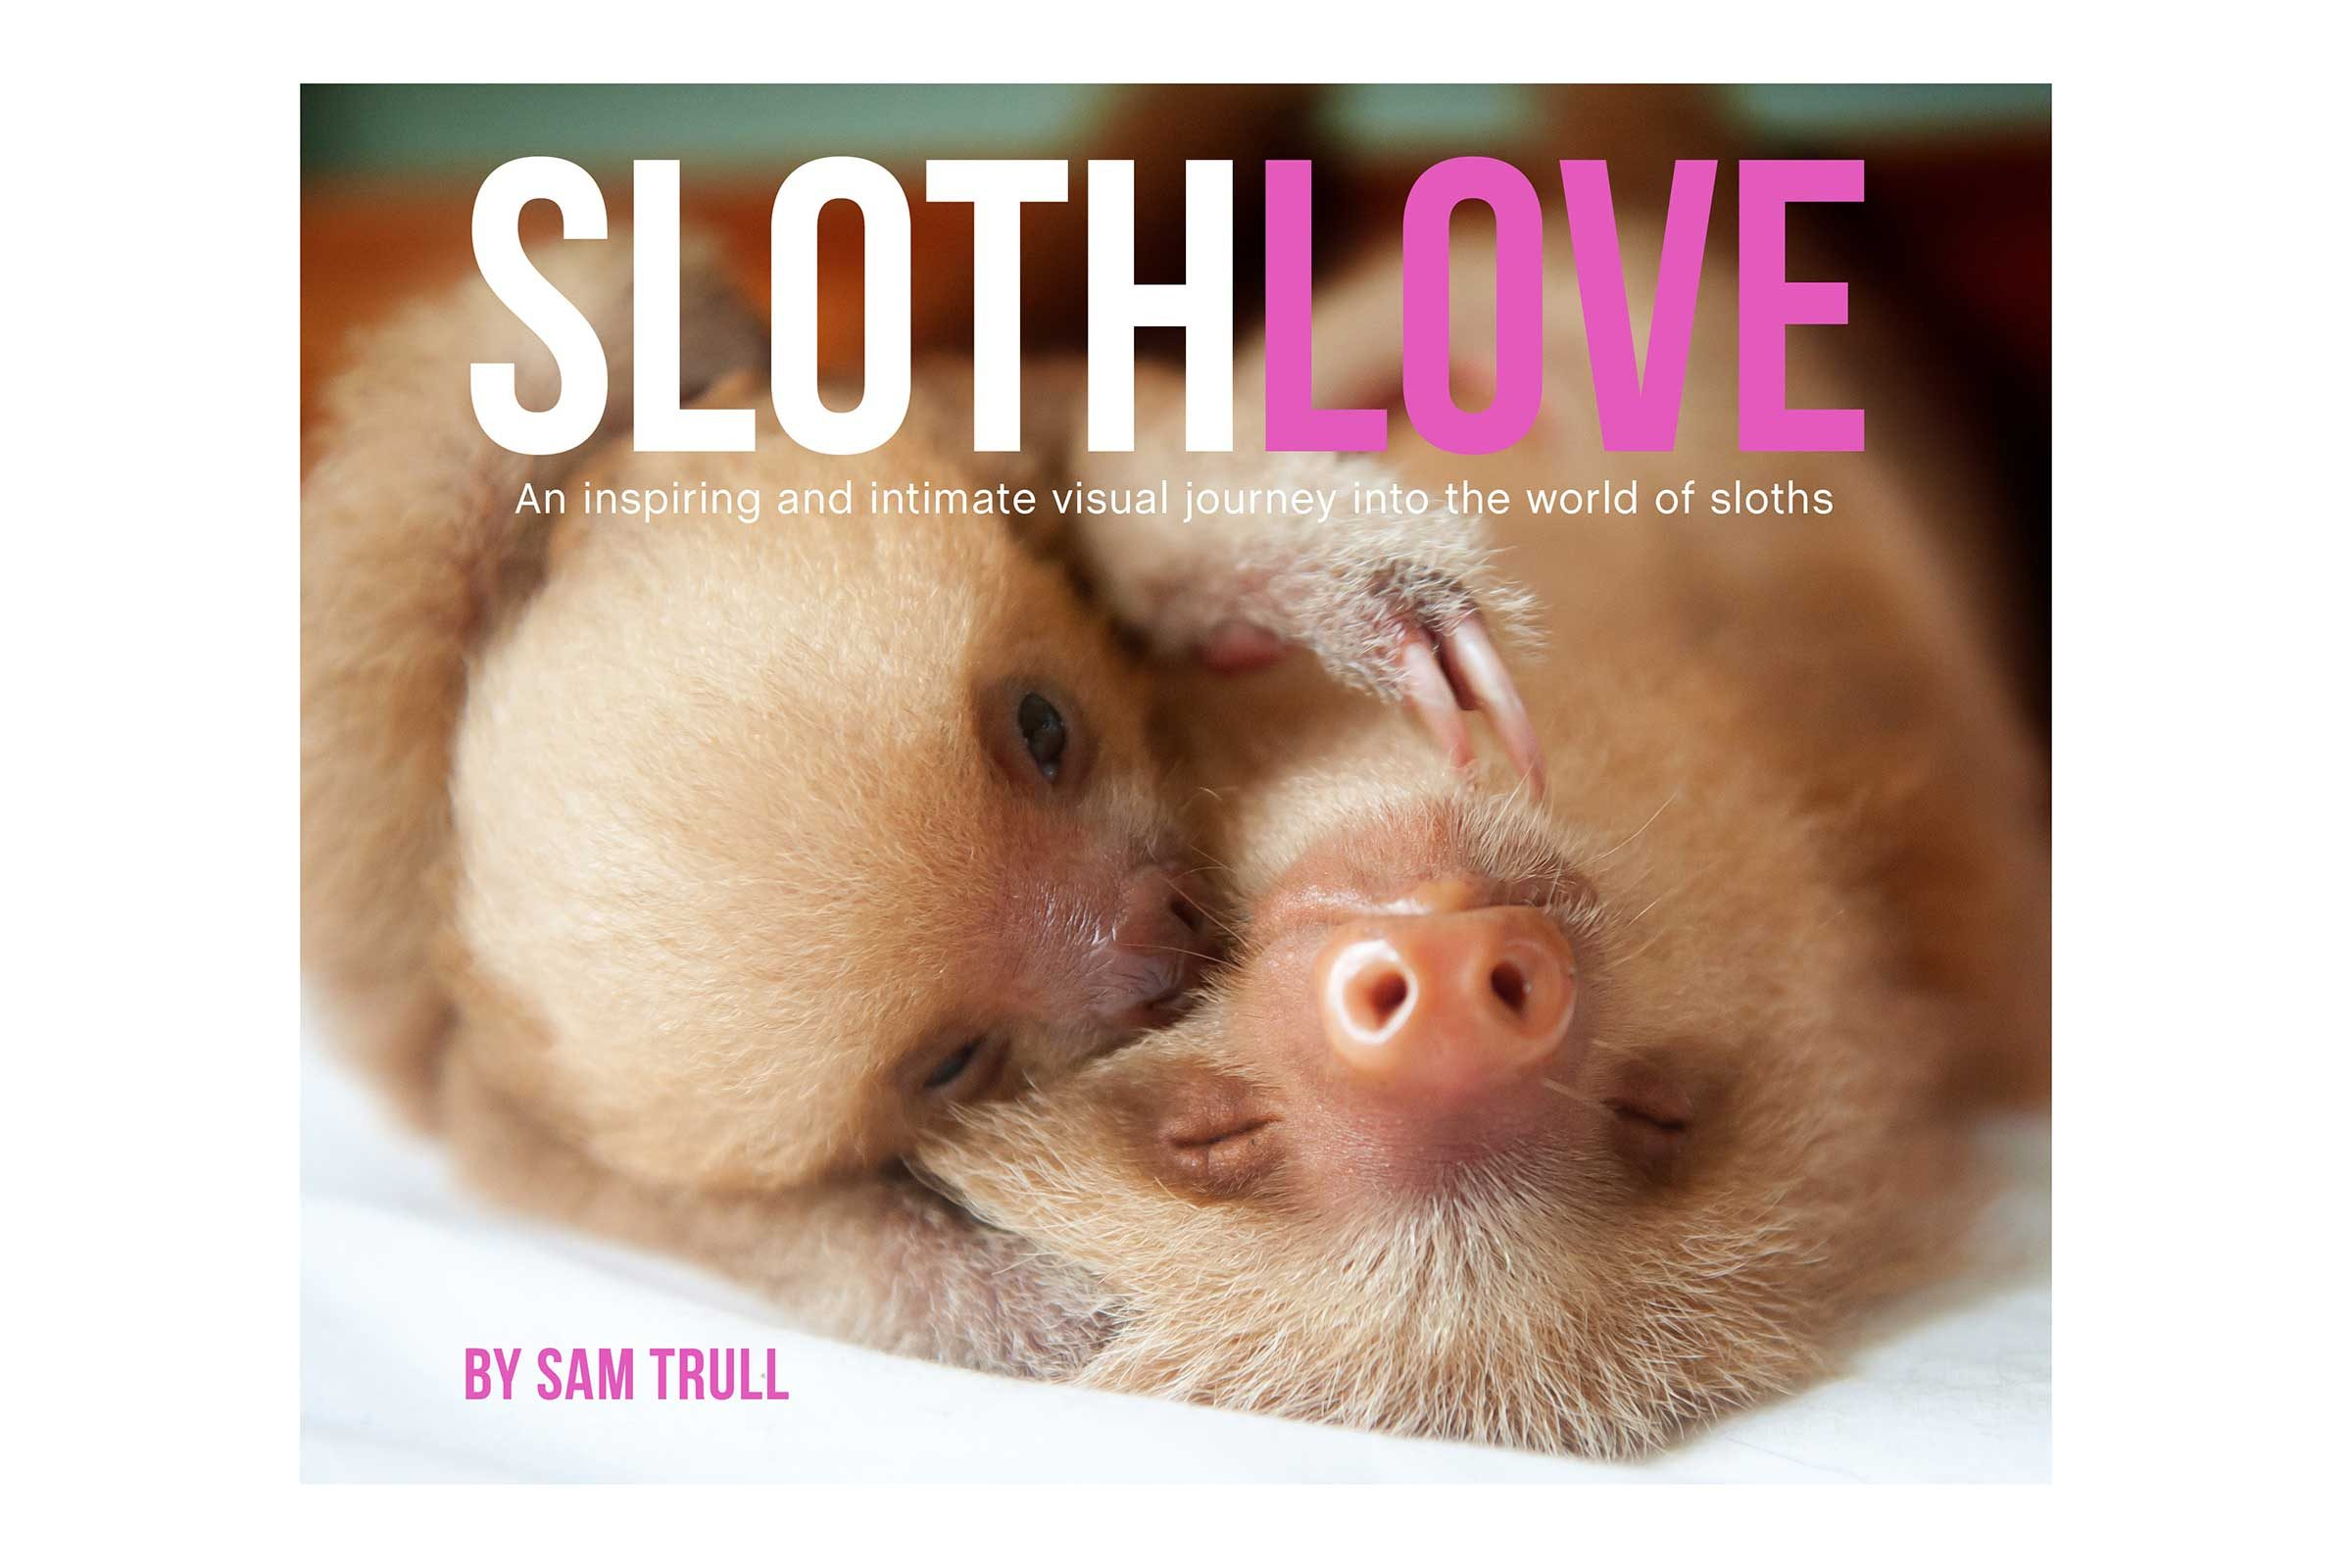 Adorable Sloth Pictures You Need in Your Life | Reader's Digest